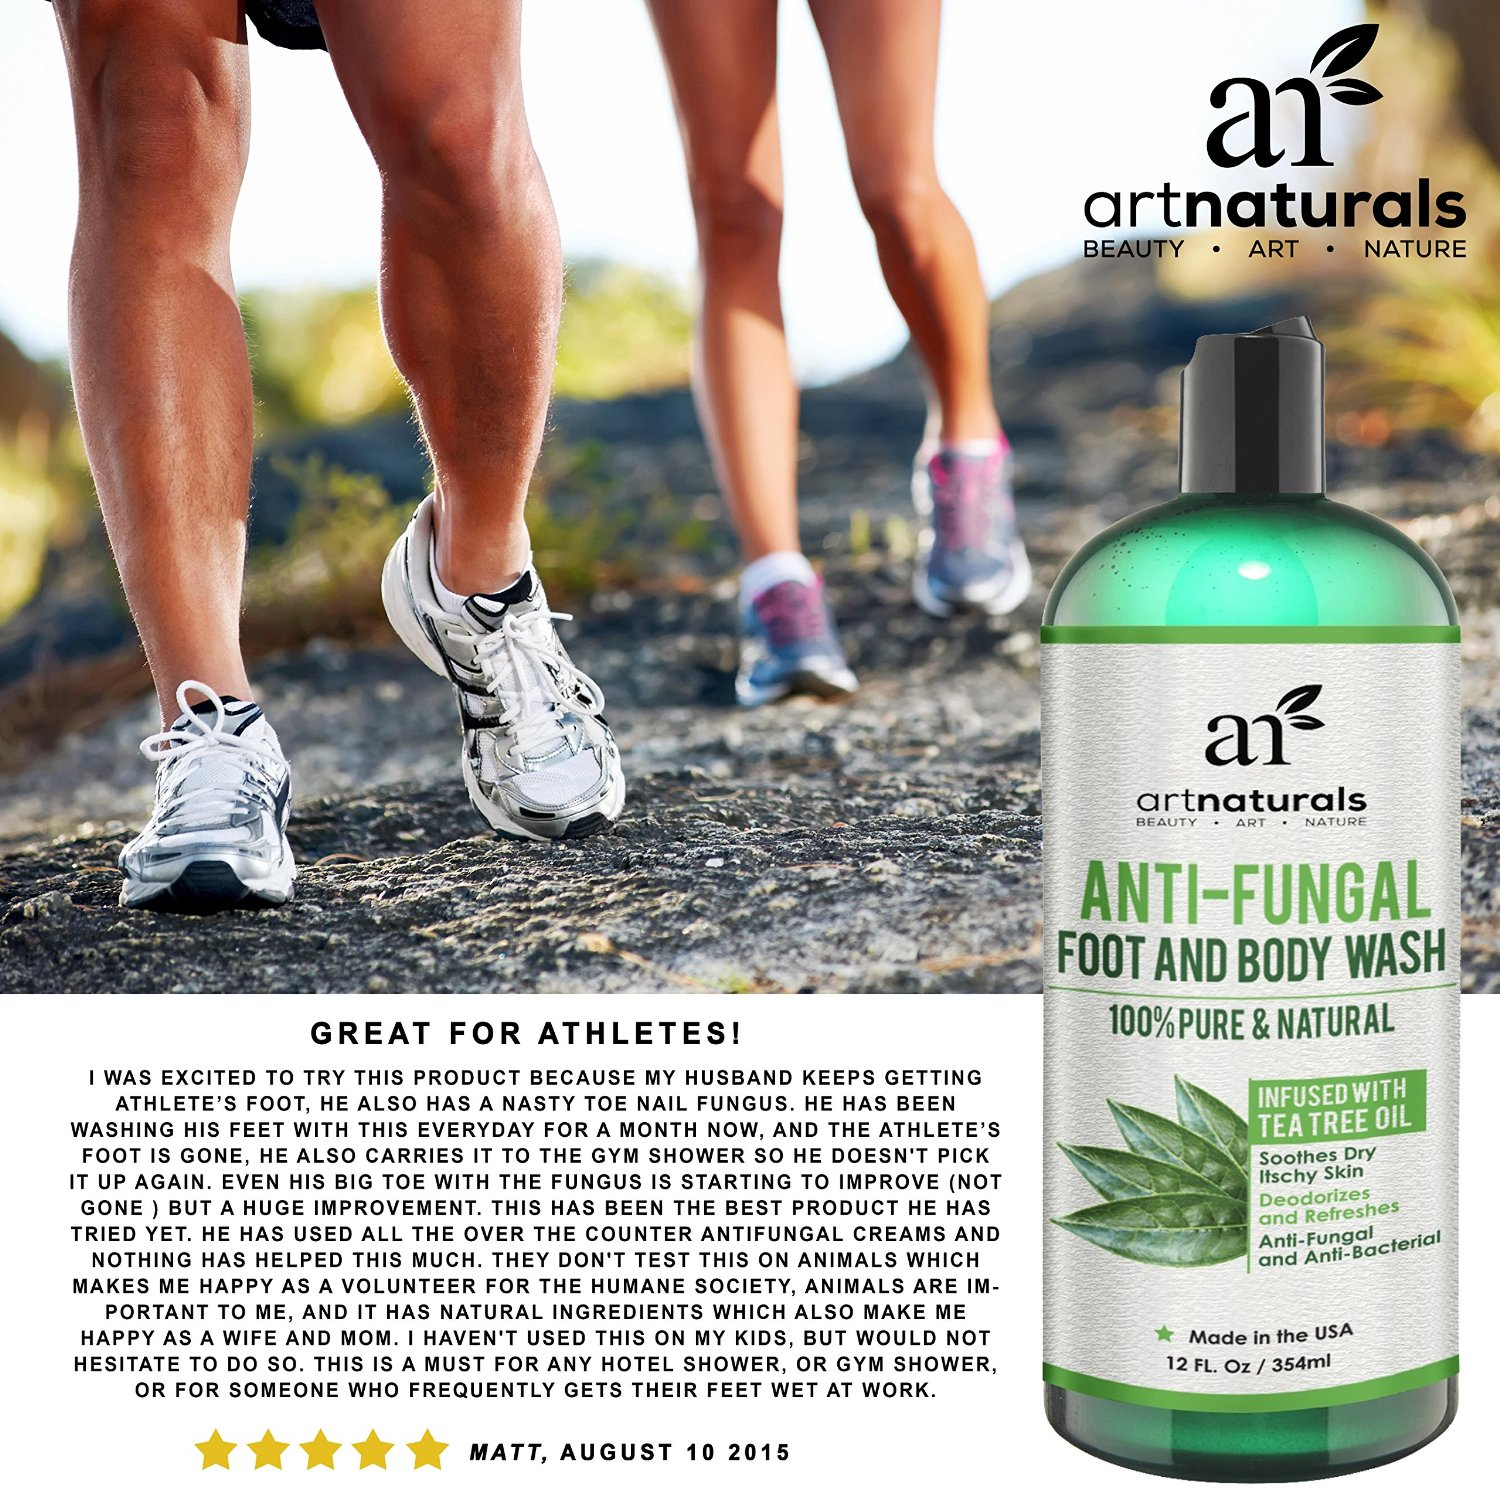 Artnaturals Body and Foot Wash for atheletes